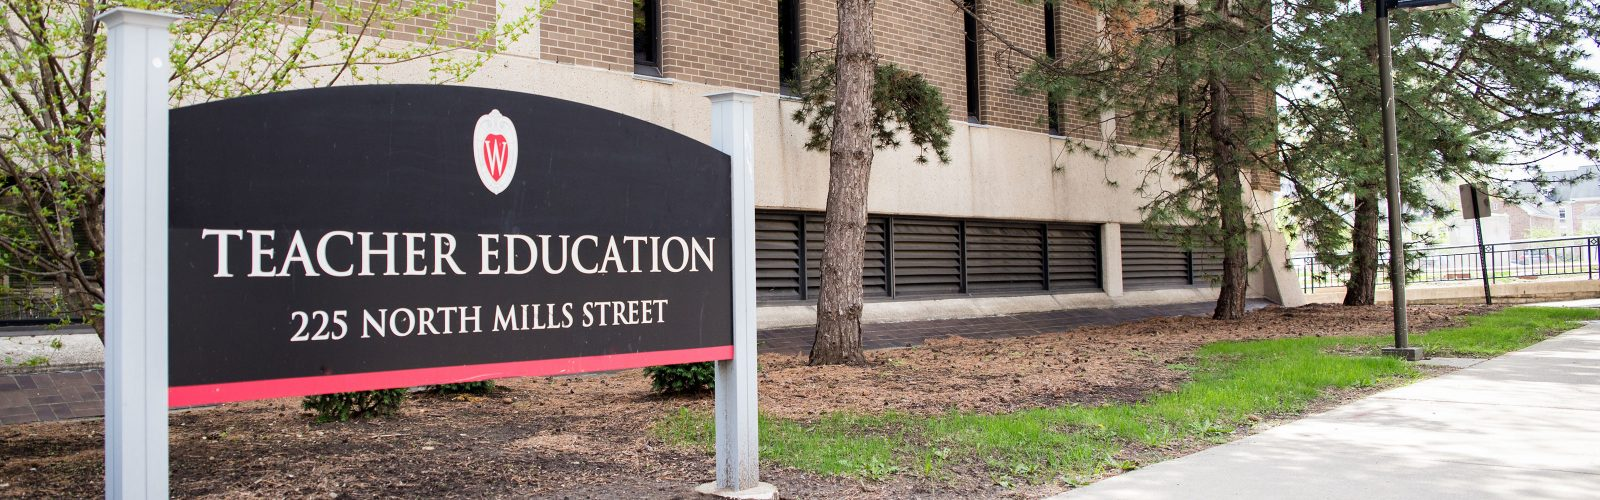 Sign to Teacher Education Building